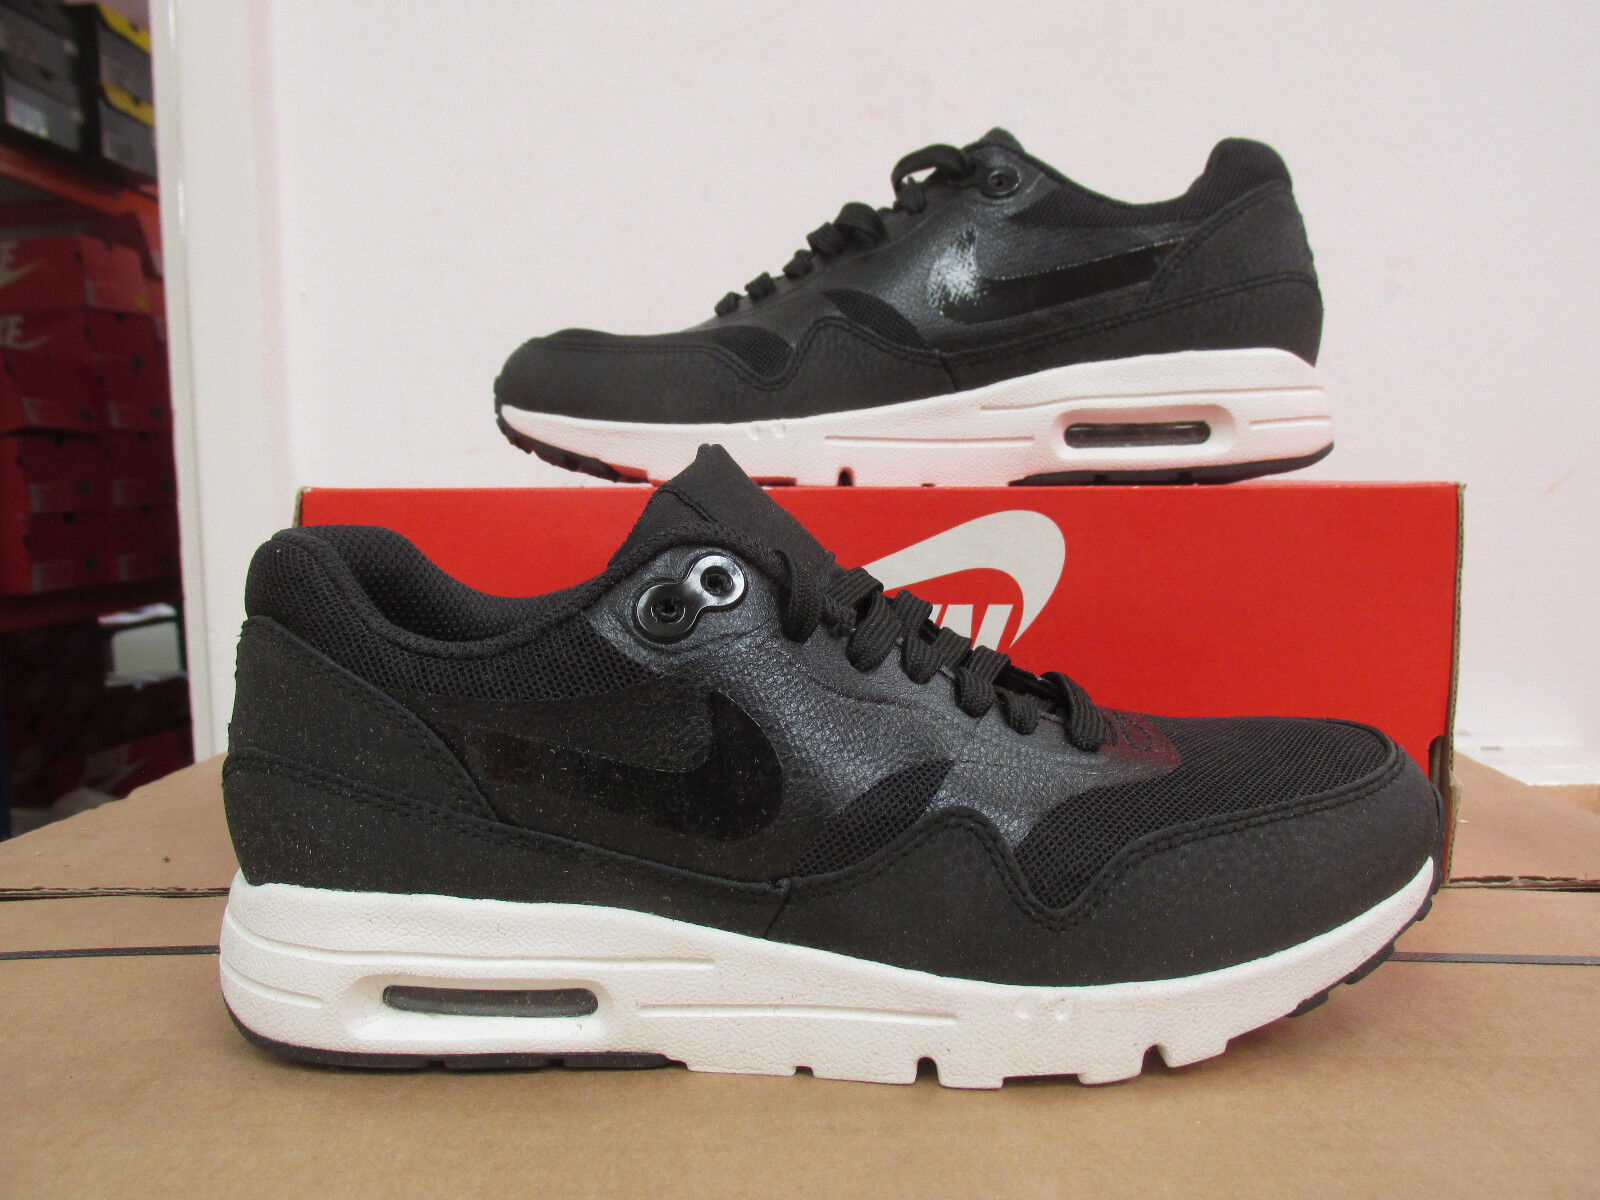 Nike Air Max 1 Ultra Essentials Damen Turnschuhe 704993 001 Sneakers Räumung